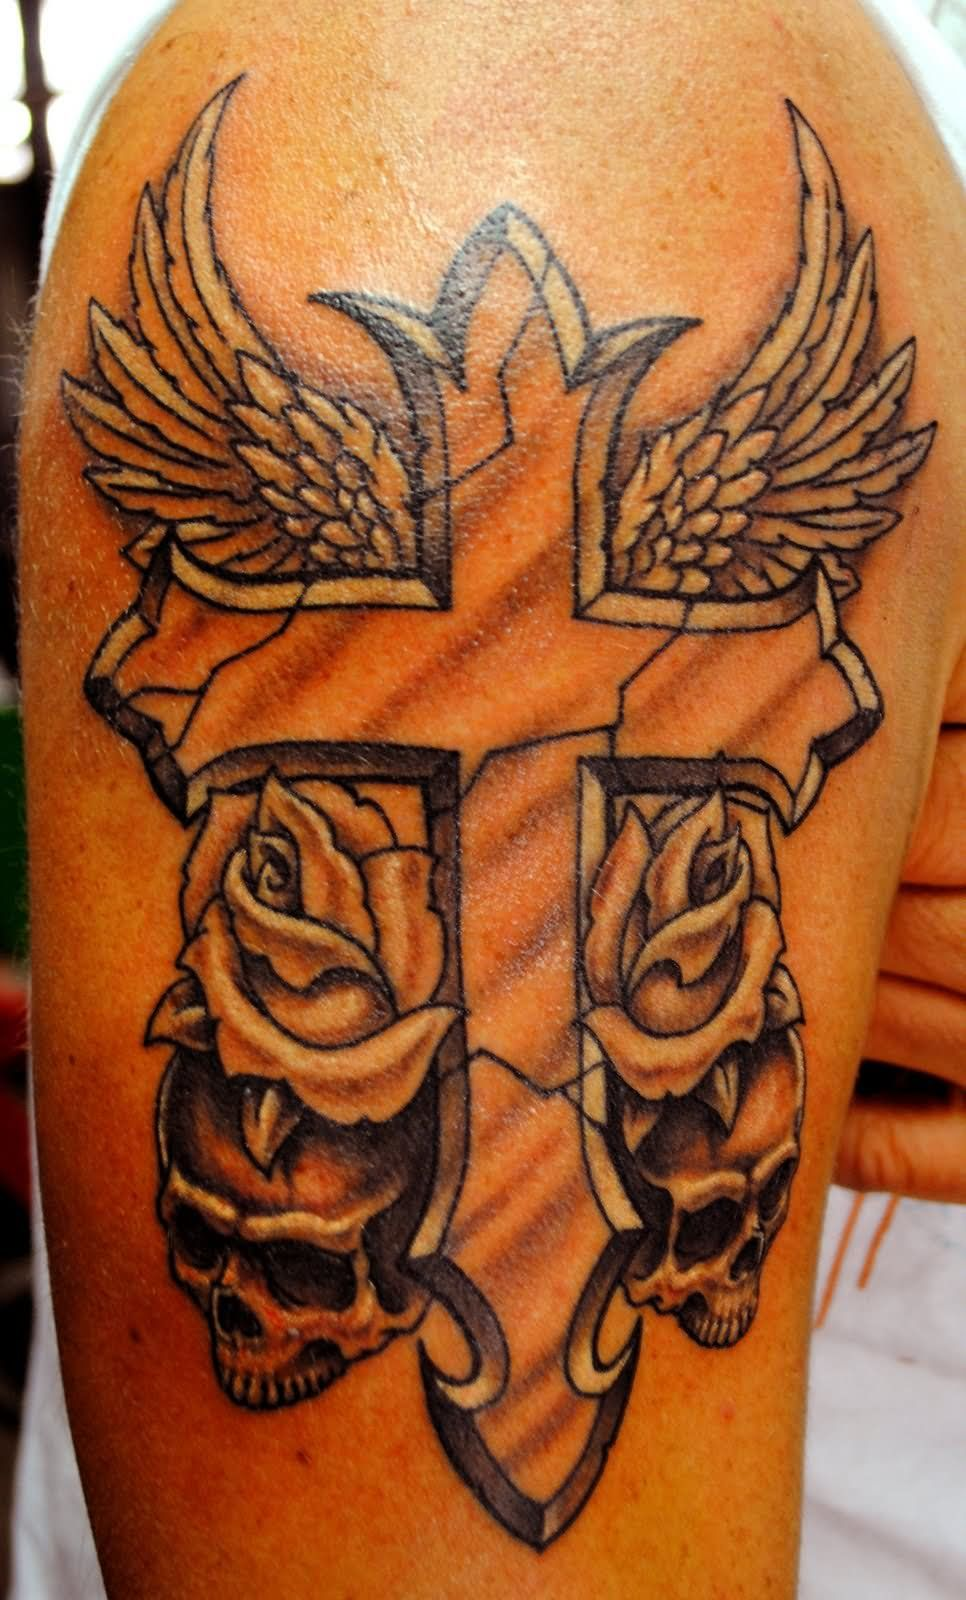 Mens cross tattoo with roses - Skull Rose And Wings Cross Tattoo On Half Sleeve